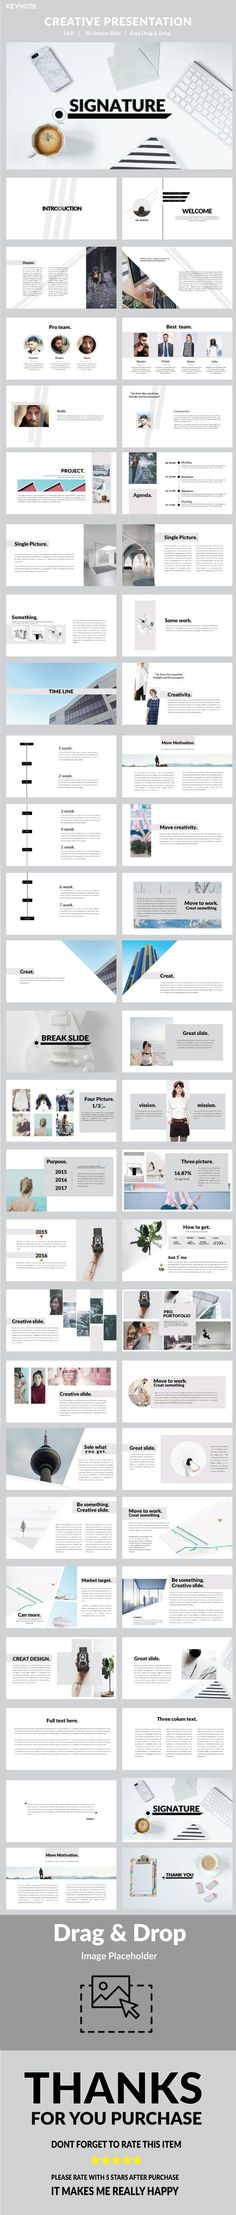 MAIN FILE:Images Placeholder Drag and Drop Image Theme Colour Option, Easy to change colors, Fully editable text, photos, music &